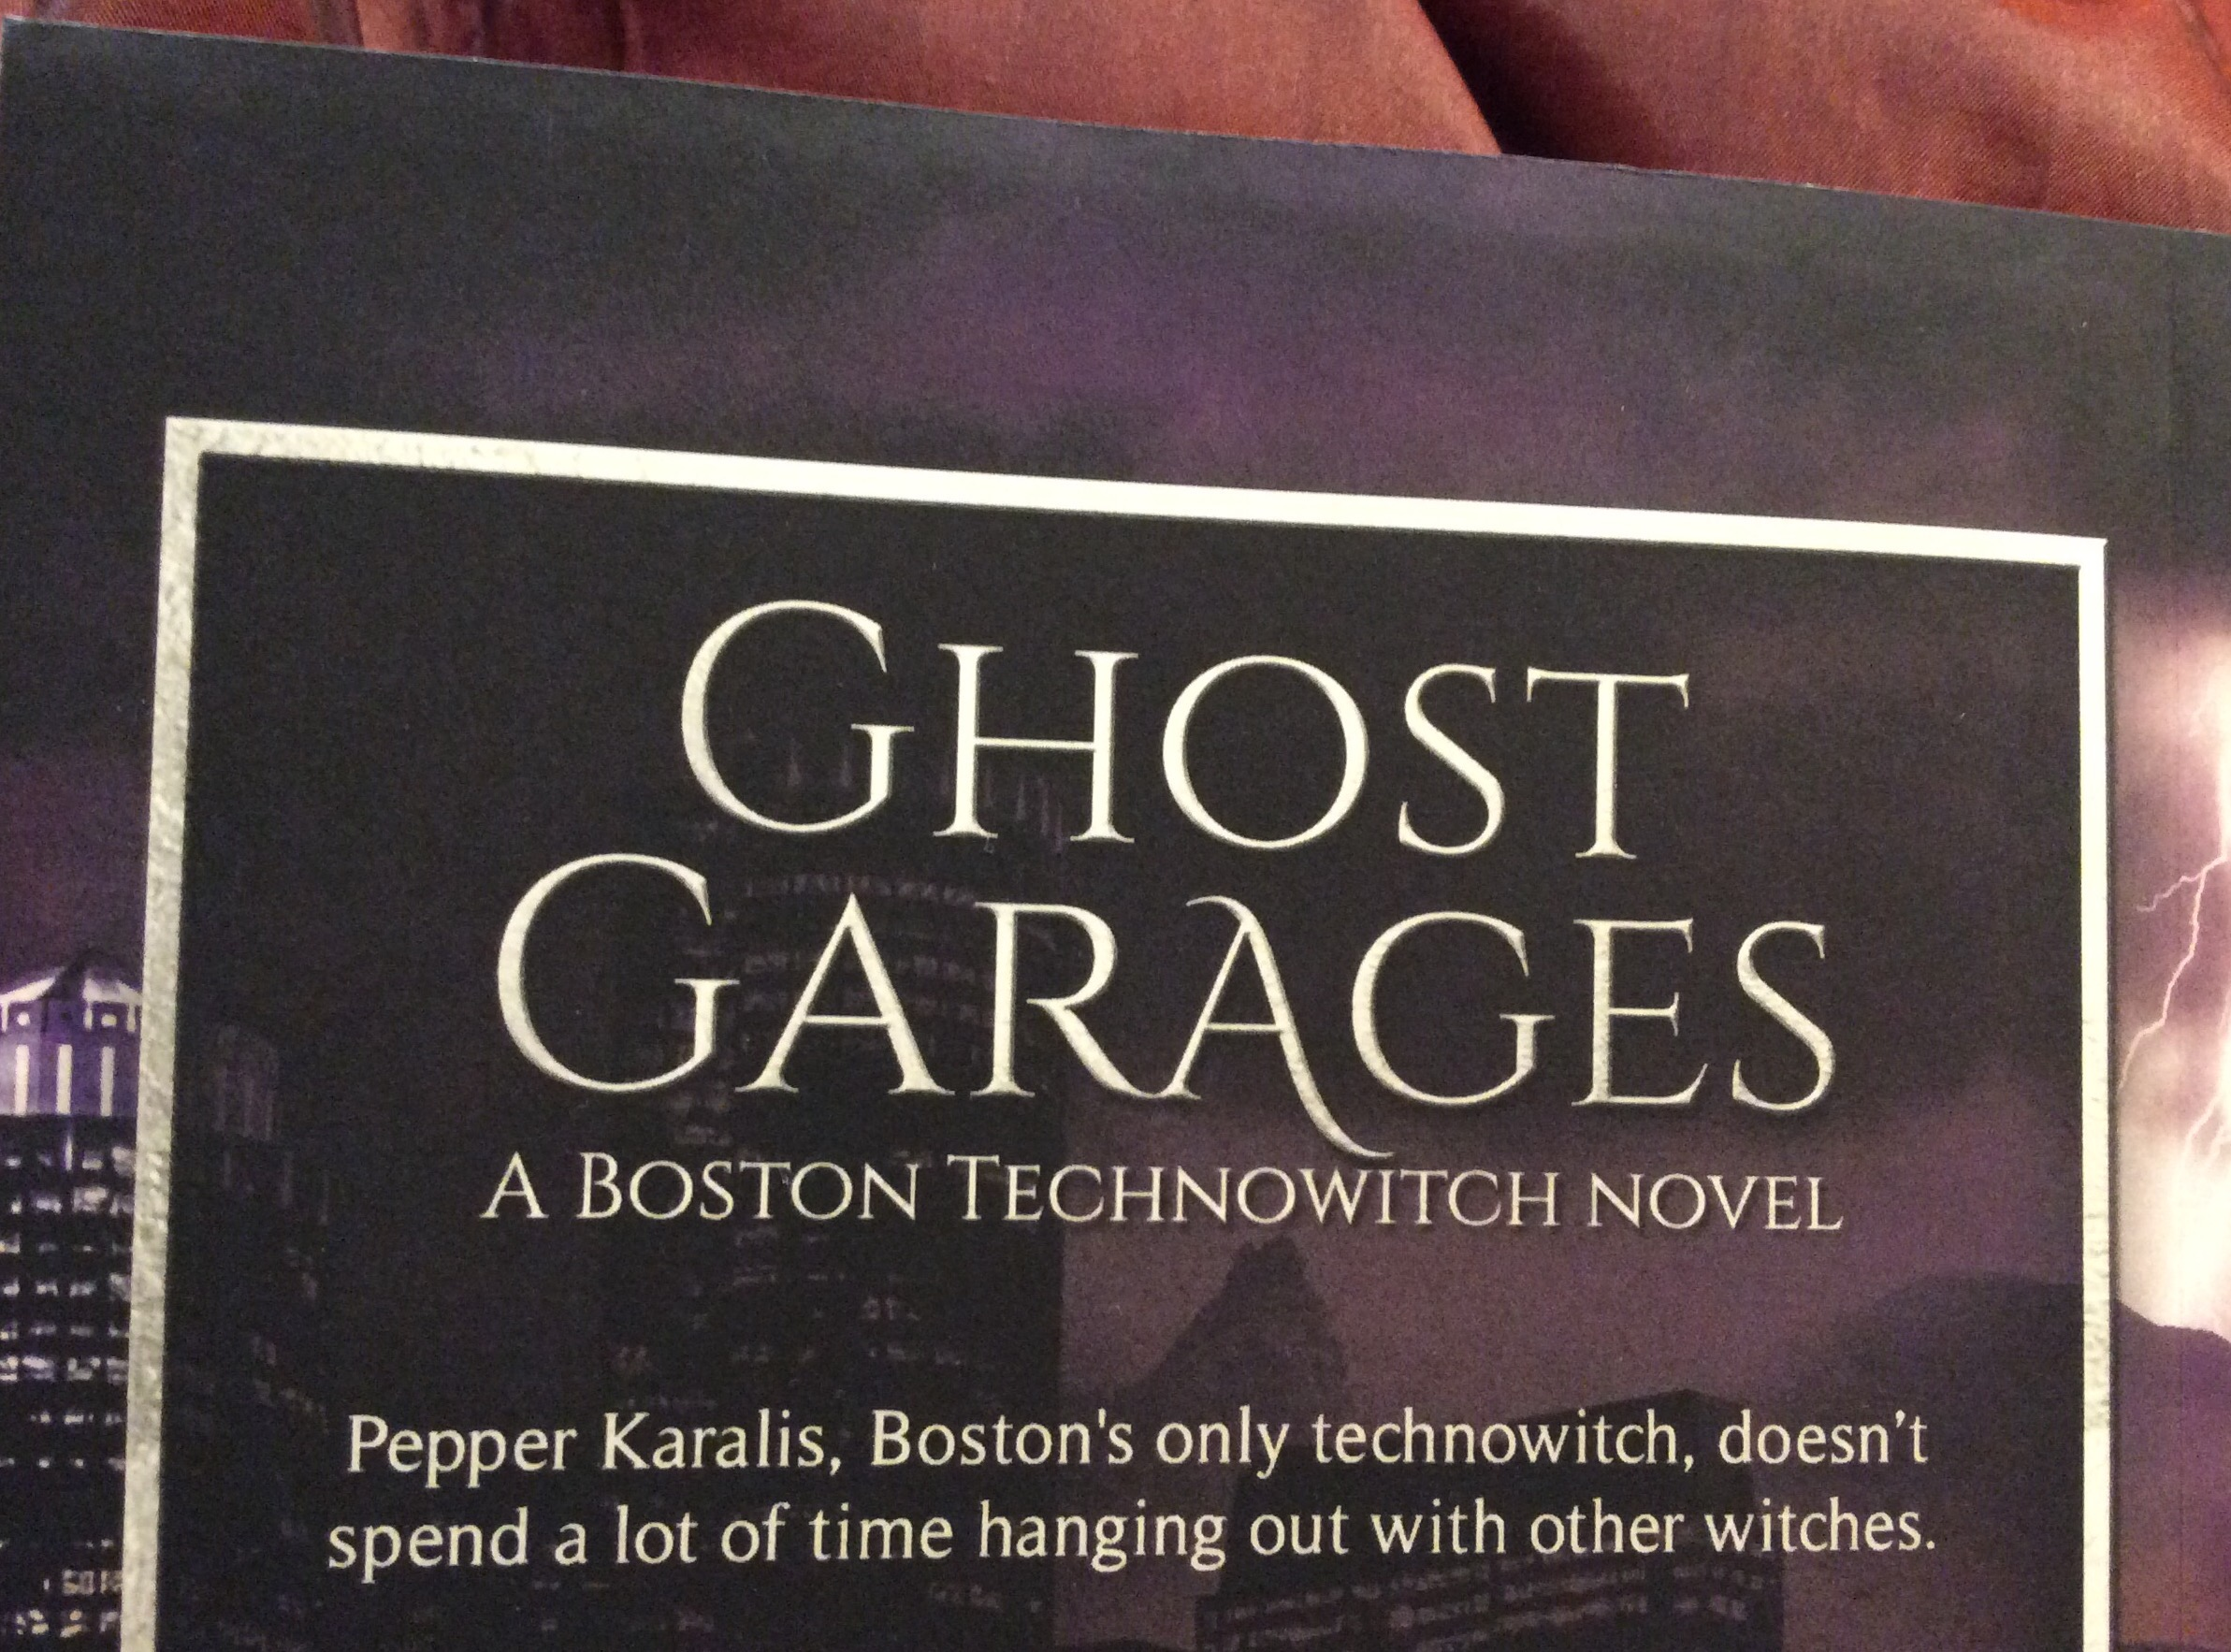 Back cover teaser: Ghost Garages, A Boston Technowitch Novel. Pepper Karalis, Boston's only technowitch, doesn't spend a lot of time hanging out with other witches.